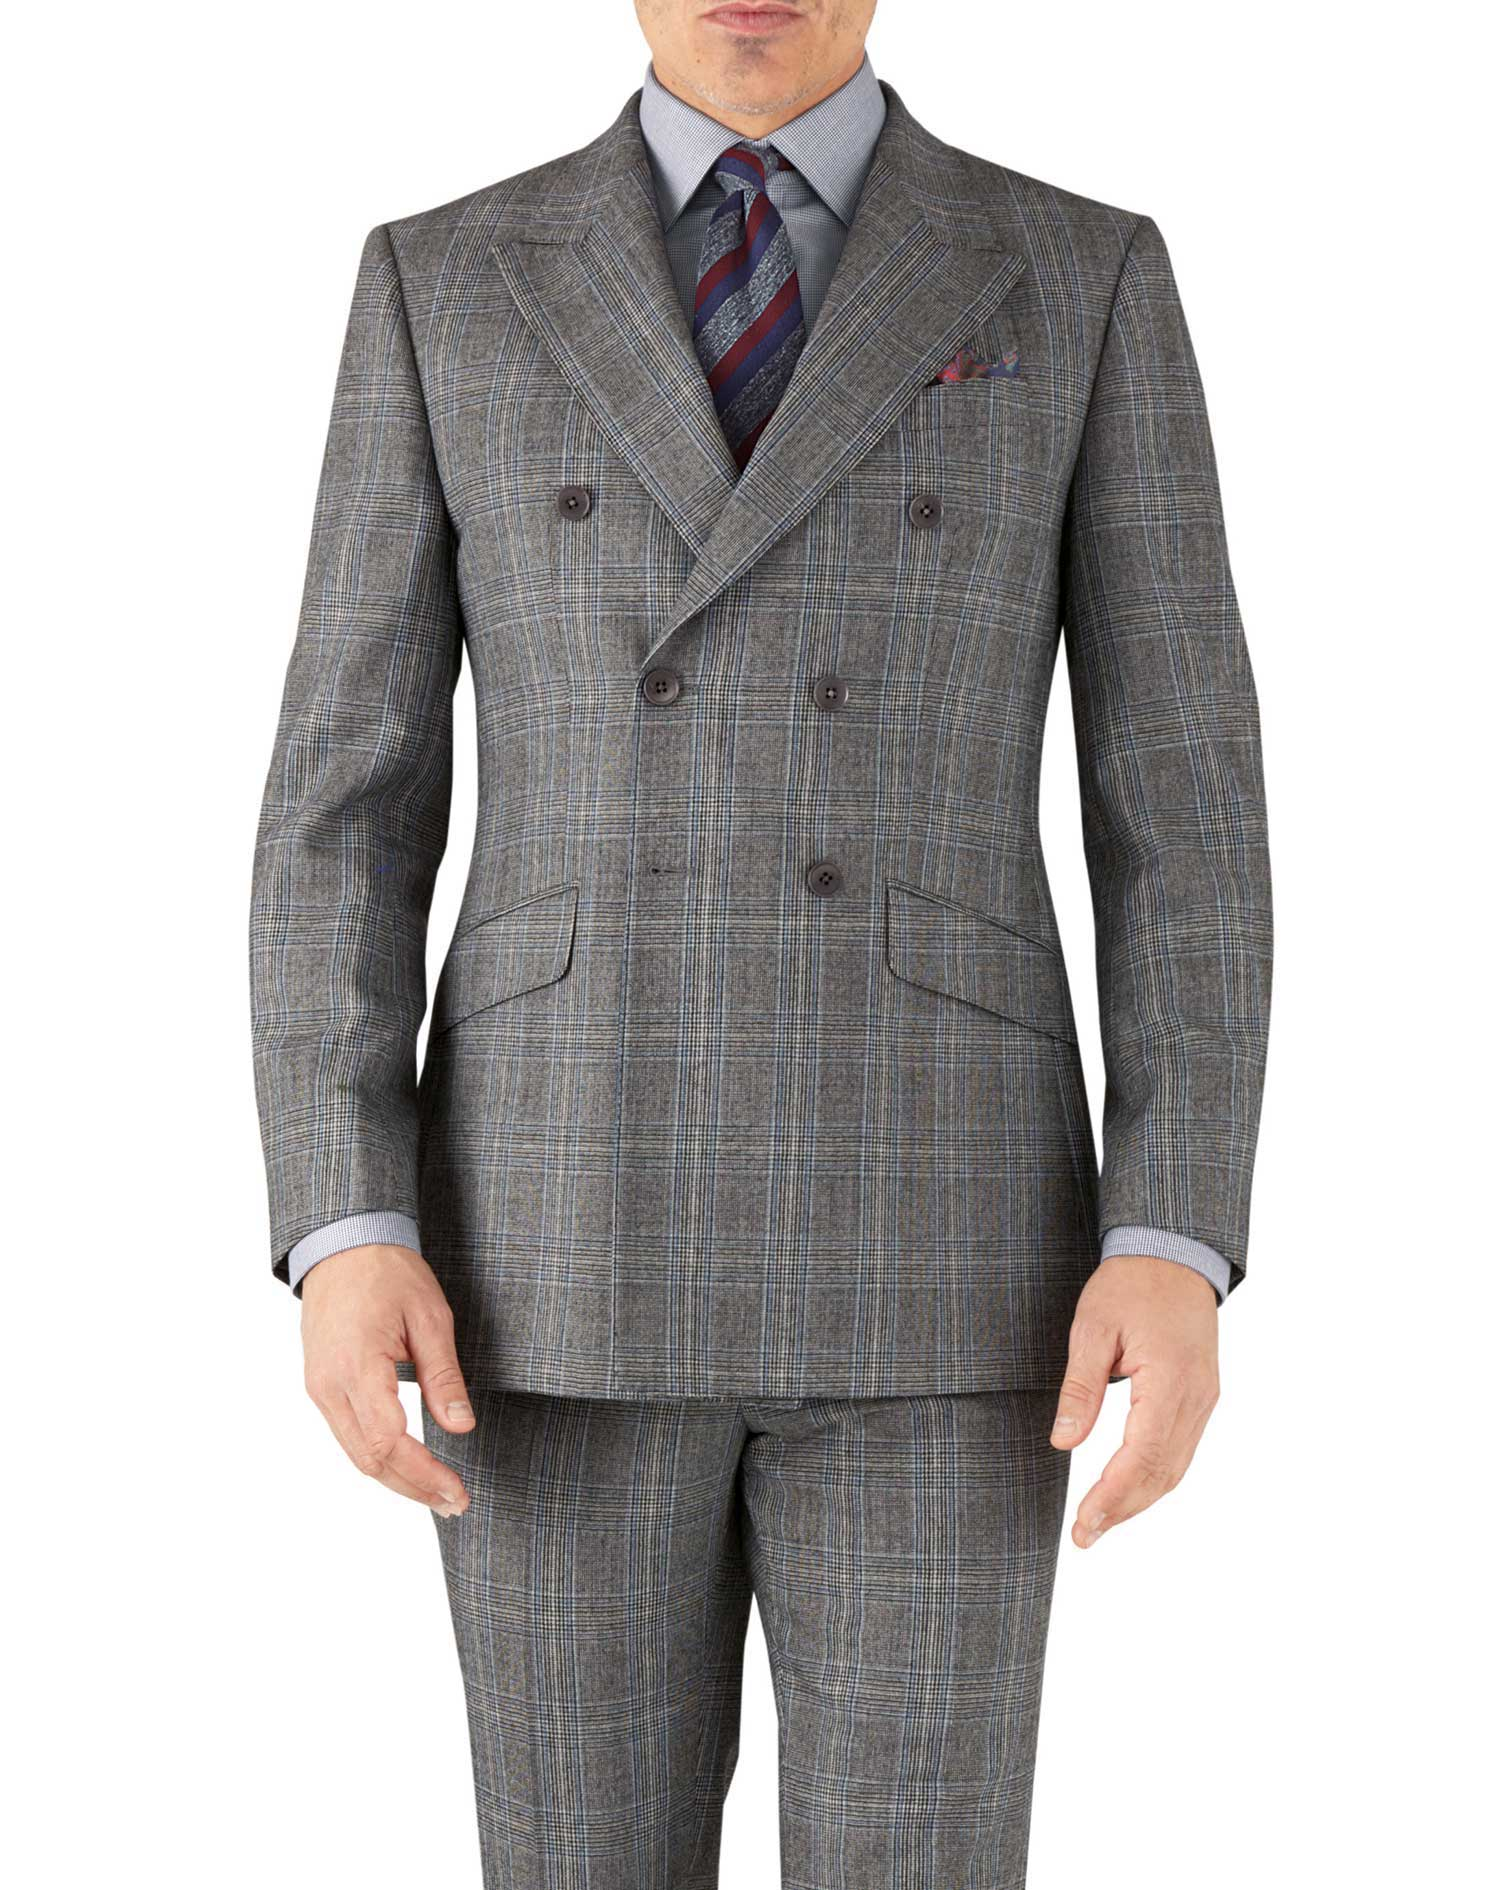 Silver Prince Of Wales Slim Fit Flannel Double Breasted Business Suit Wool Jacket Size 40 Long by Ch